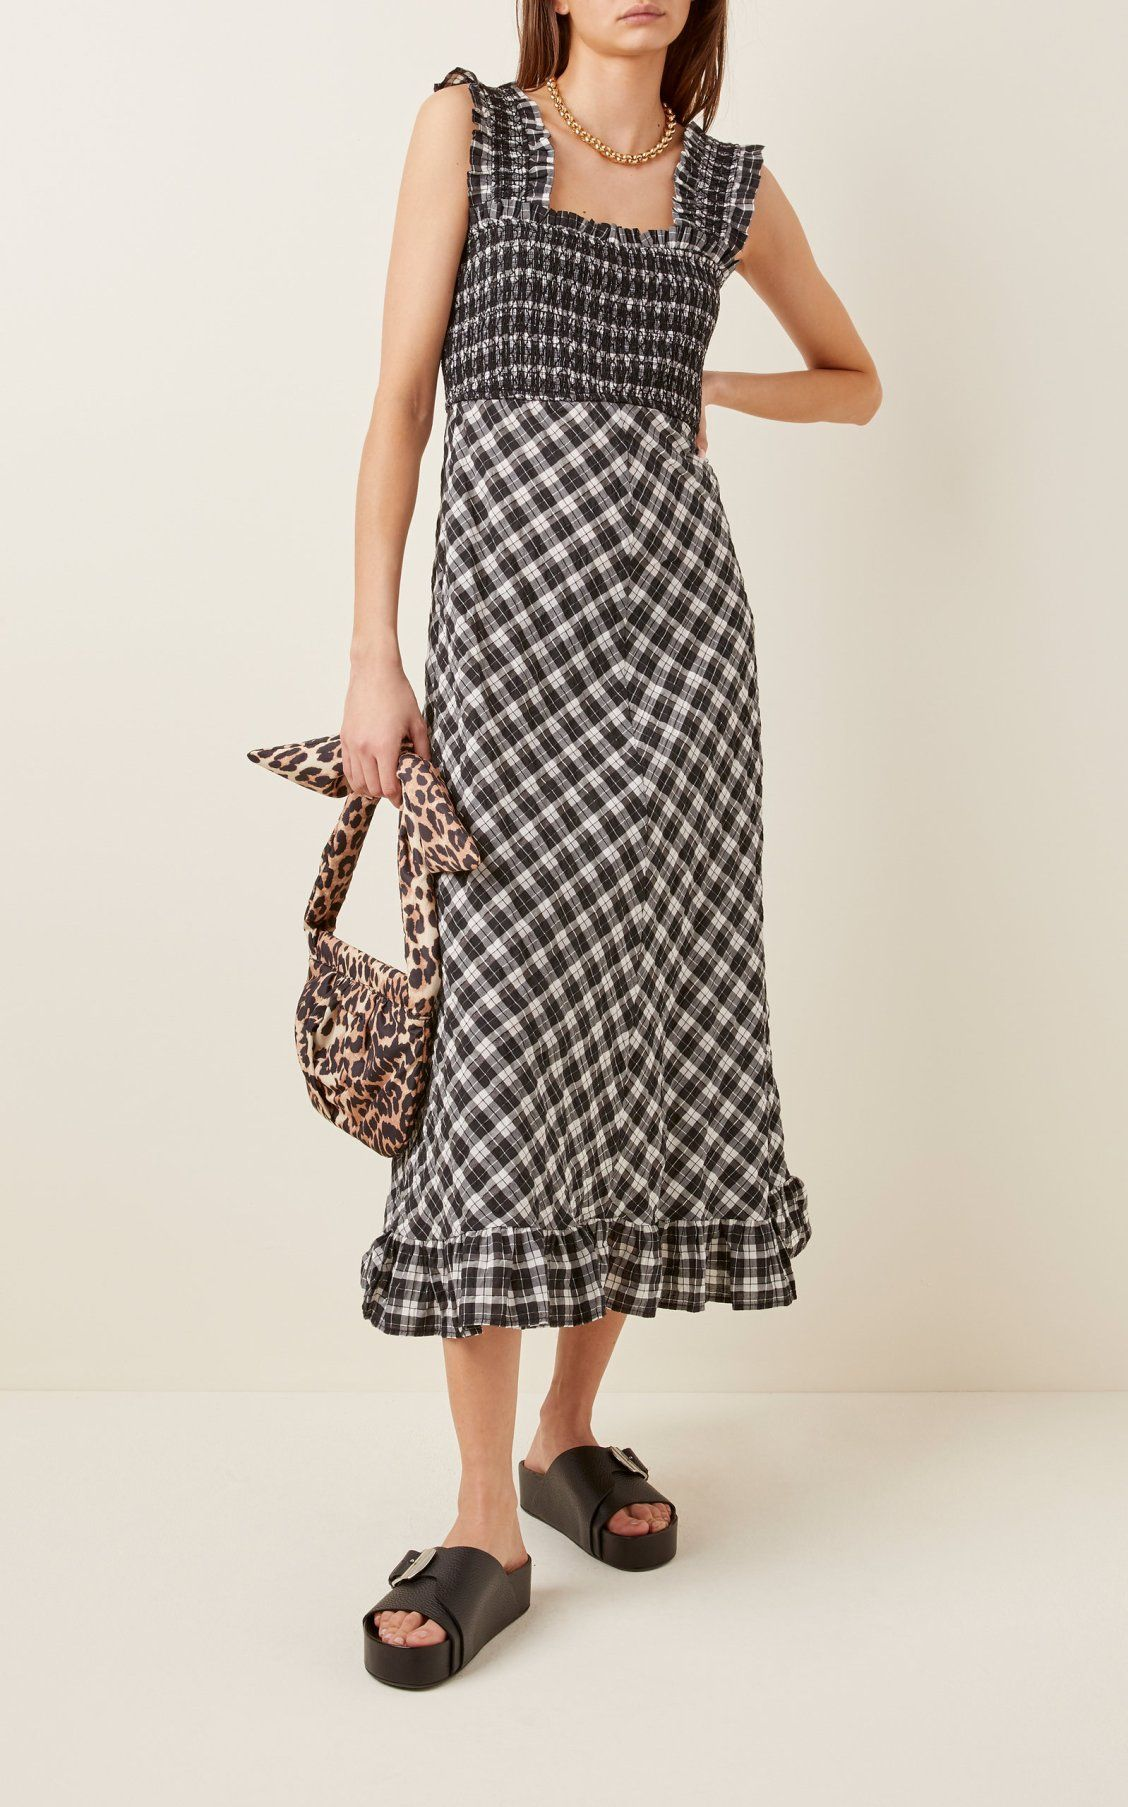 Ganni Smocked Checked Seersucker Midi Dress In 2020 Dresses Midi Dress Seersucker